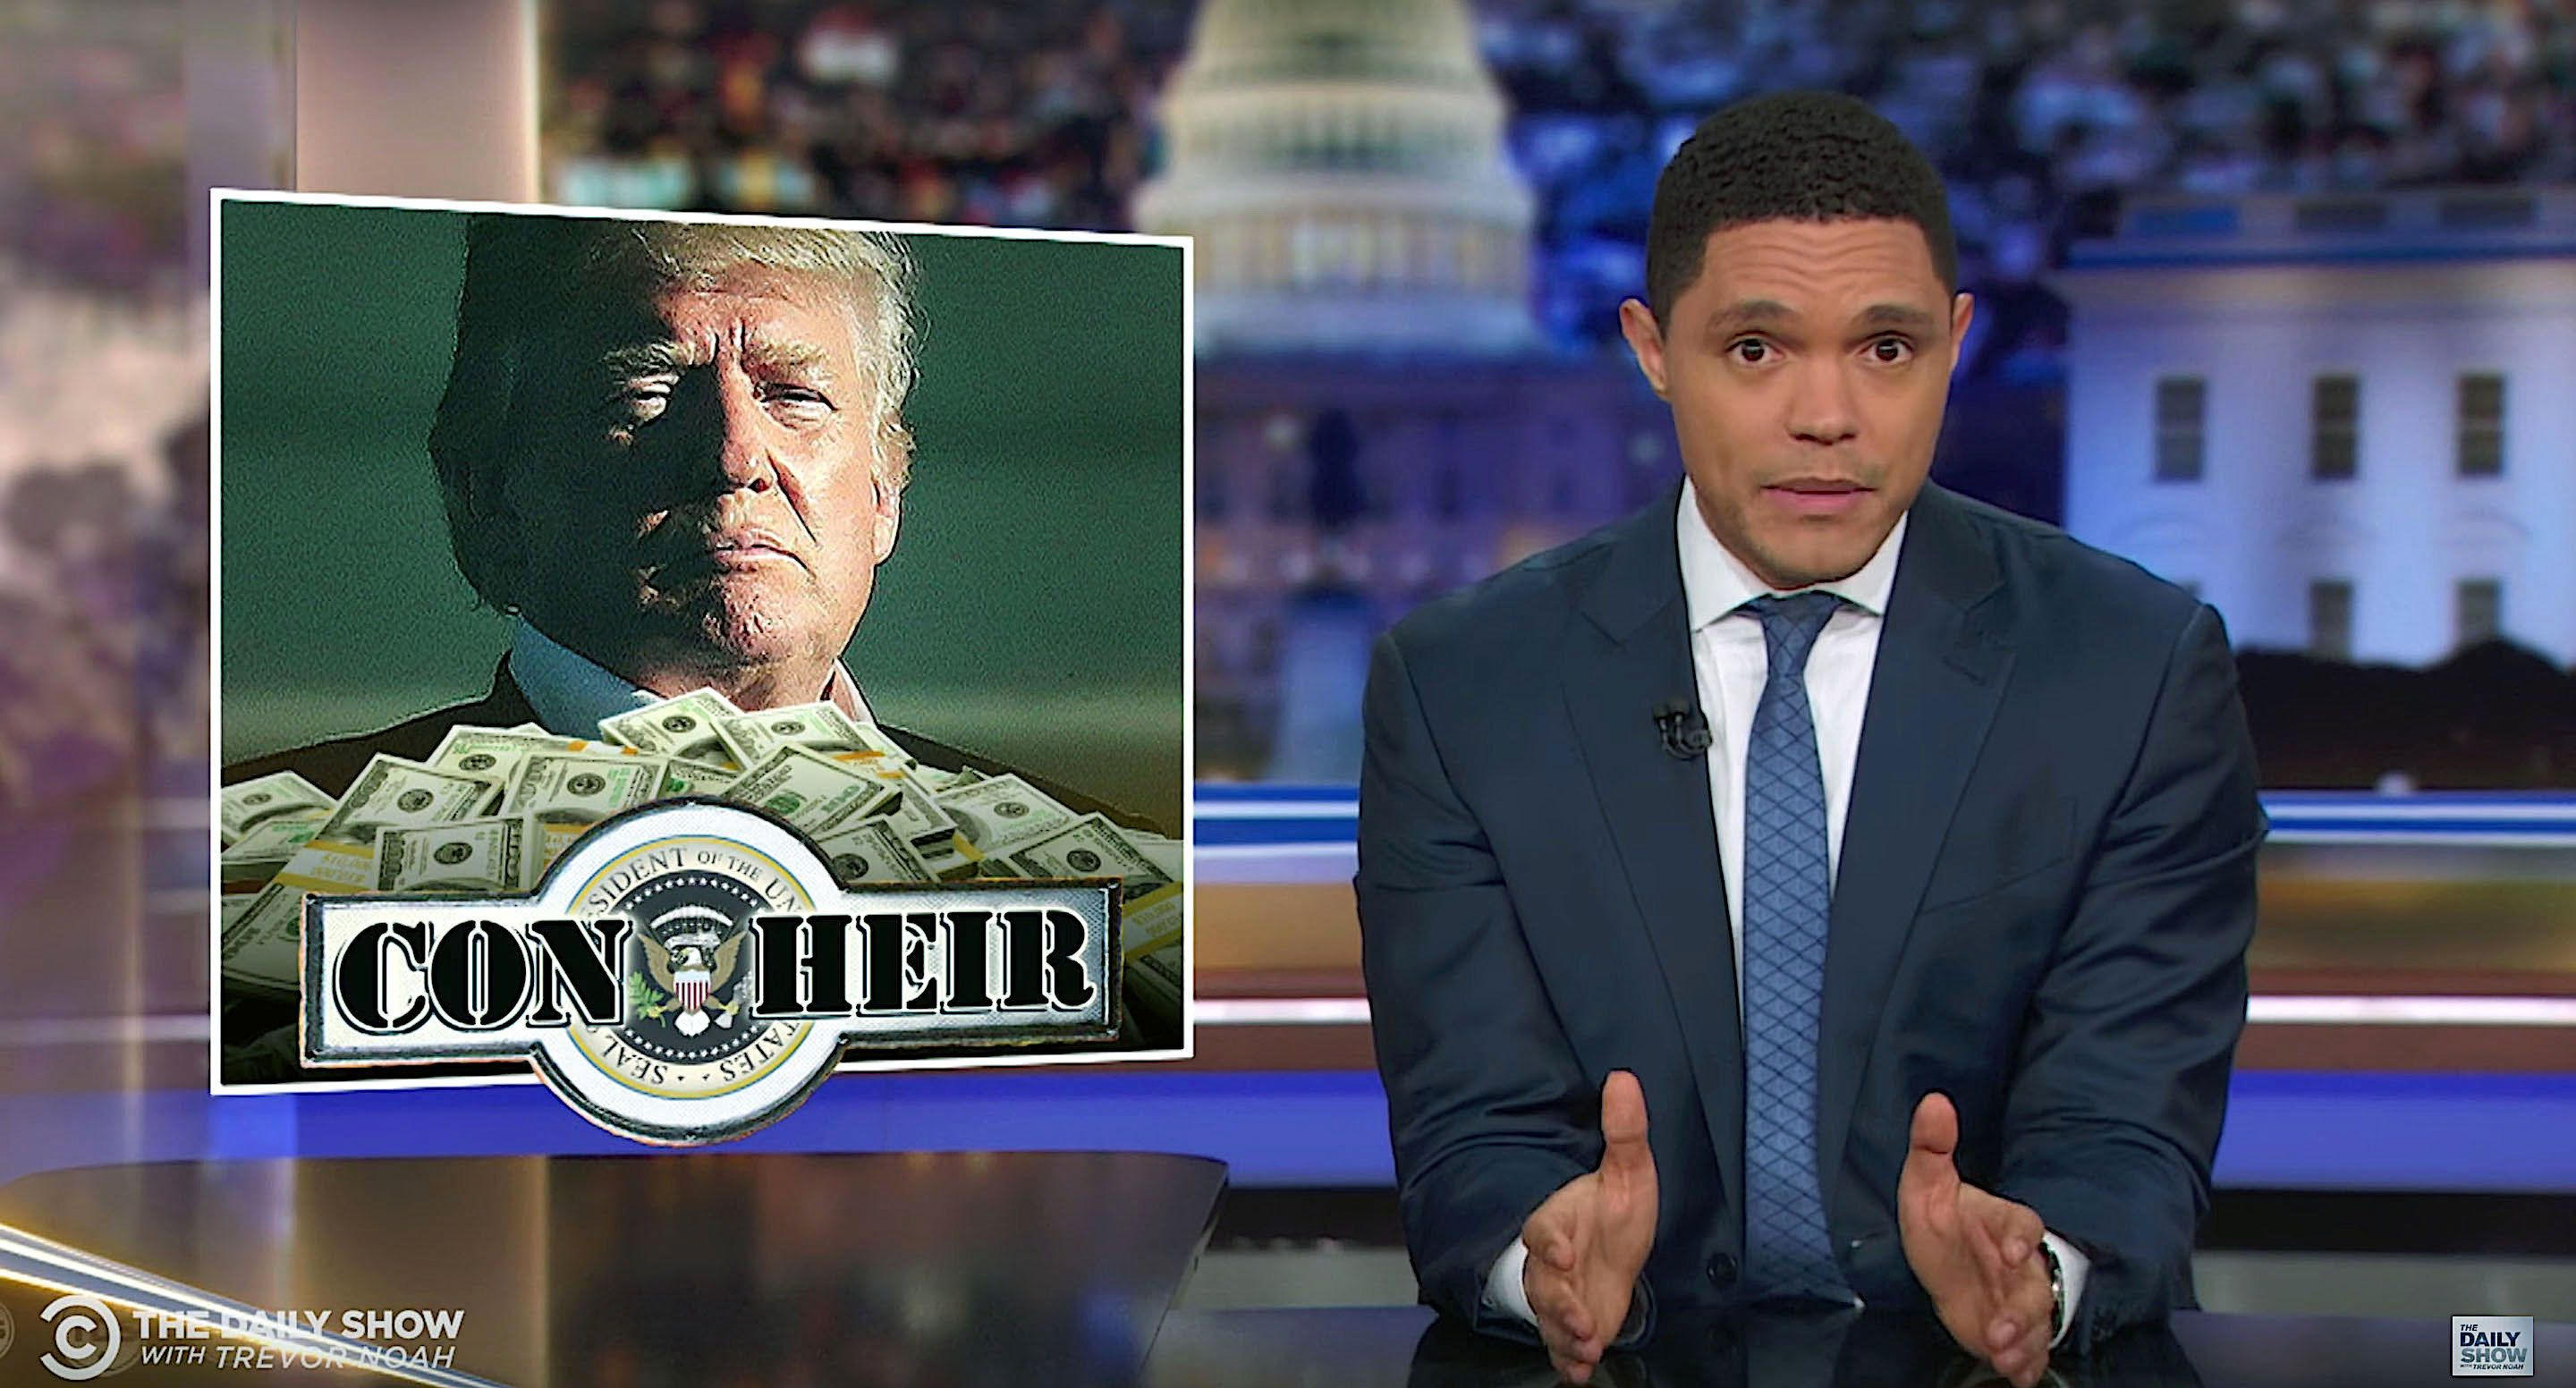 Trevor Noah takes a look at President Donald Trumps finances